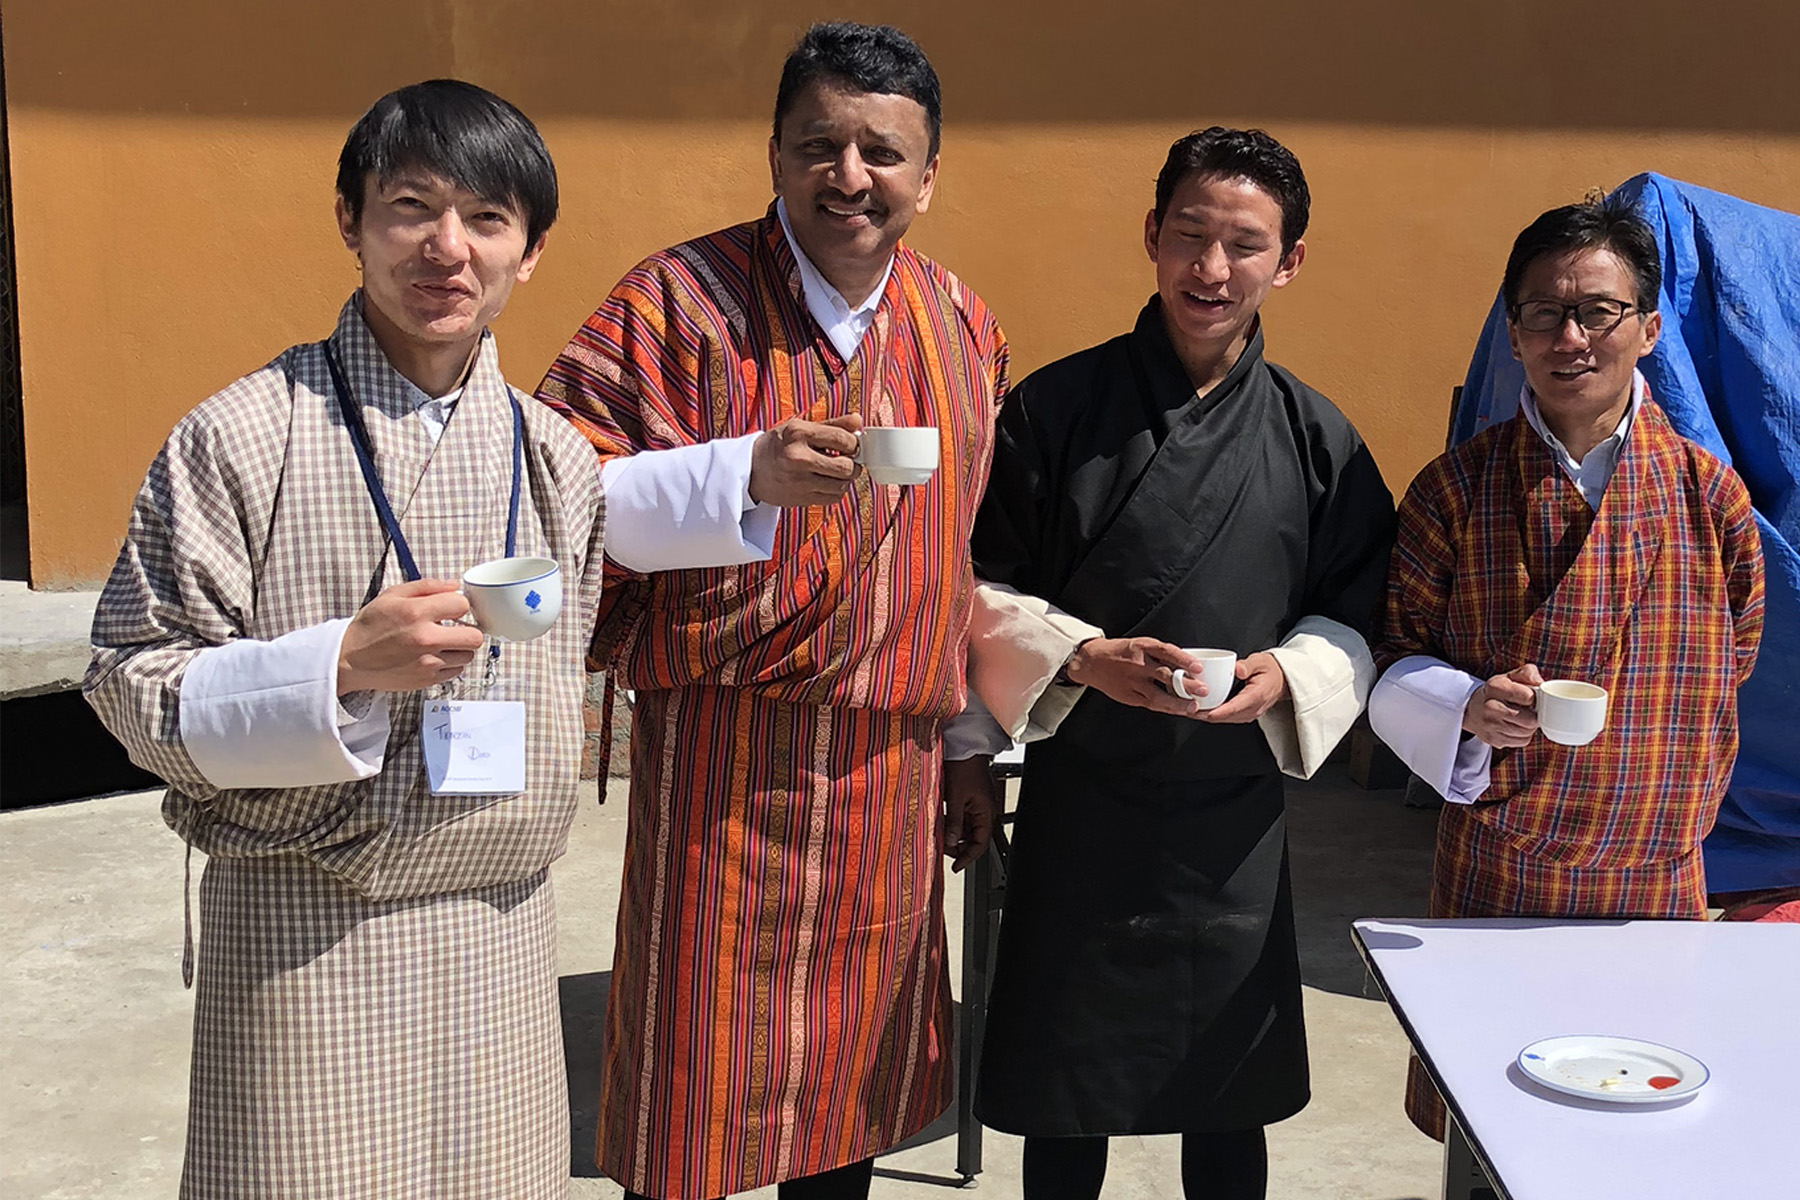 Prof S M Balaji at a Bhutanese tea drinking ceremony drinking Suja, the traditional Bhutanese butter tea